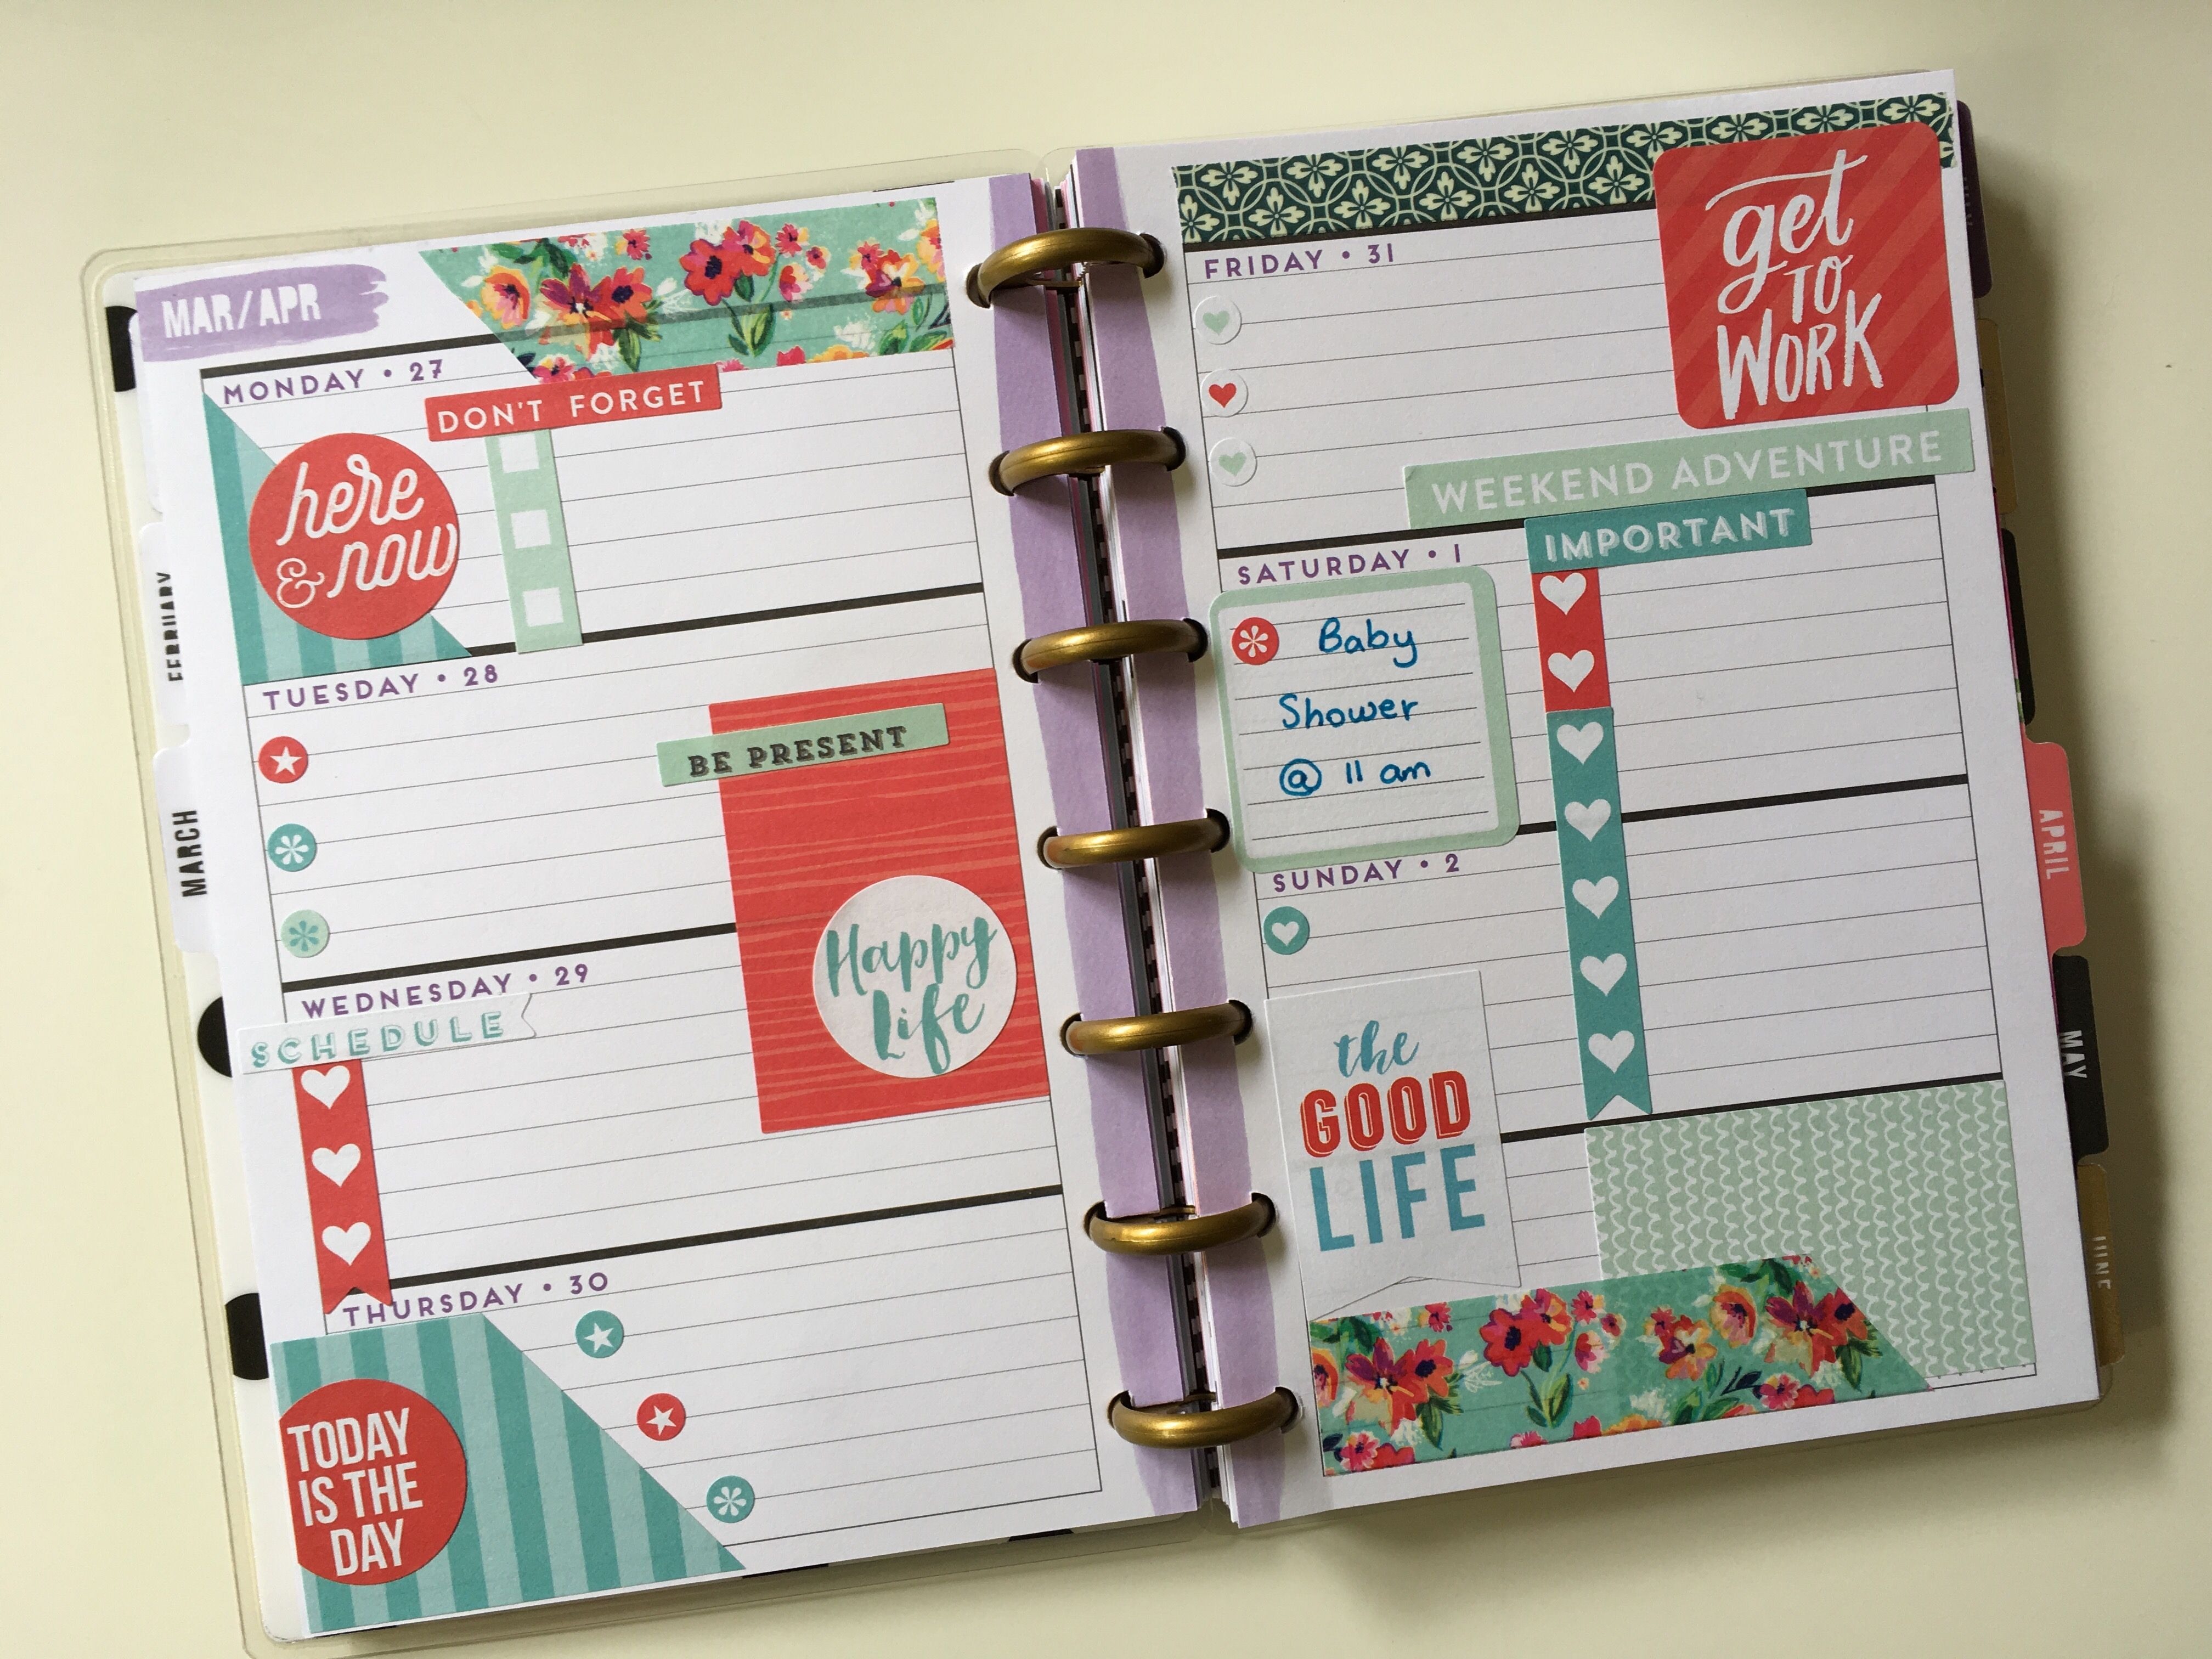 Planner Organization, Mini Happy Planner, Planner Ideas, Spreads, Washi Tape,  Room Decor, Planners, Journaling, Babe